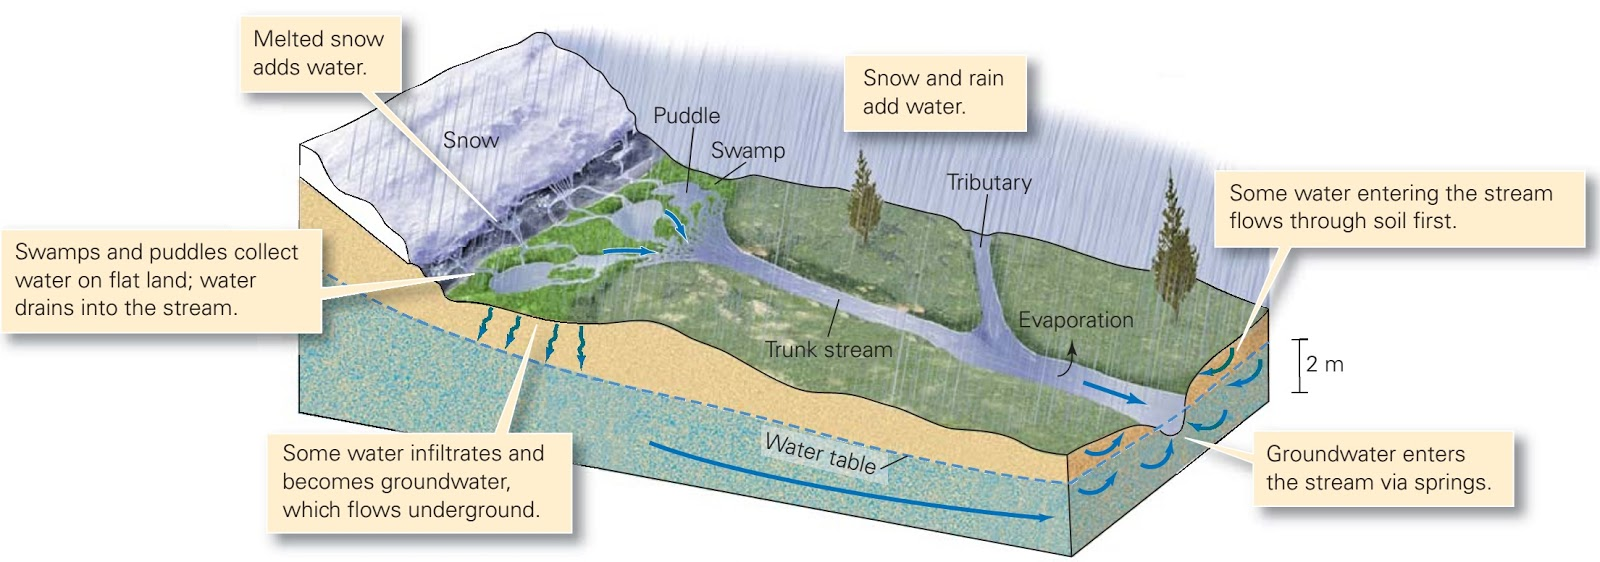 rainfall excess and surface runoff Research paper rainfall-runoff relationships using curve  impervious the surface infiltration excess runoff  the rainfall-runoff data used in the development of.